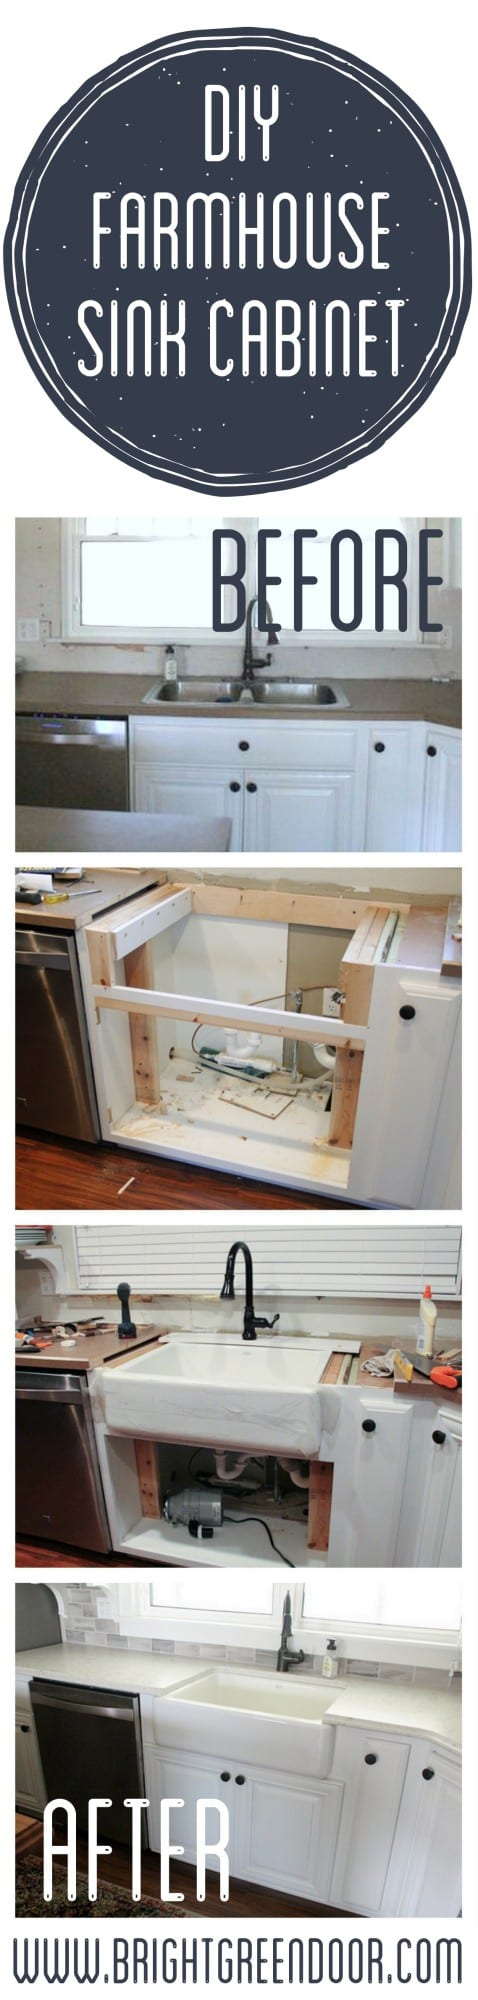 Installing a Farmhouse Sink into an Existing Cabinet